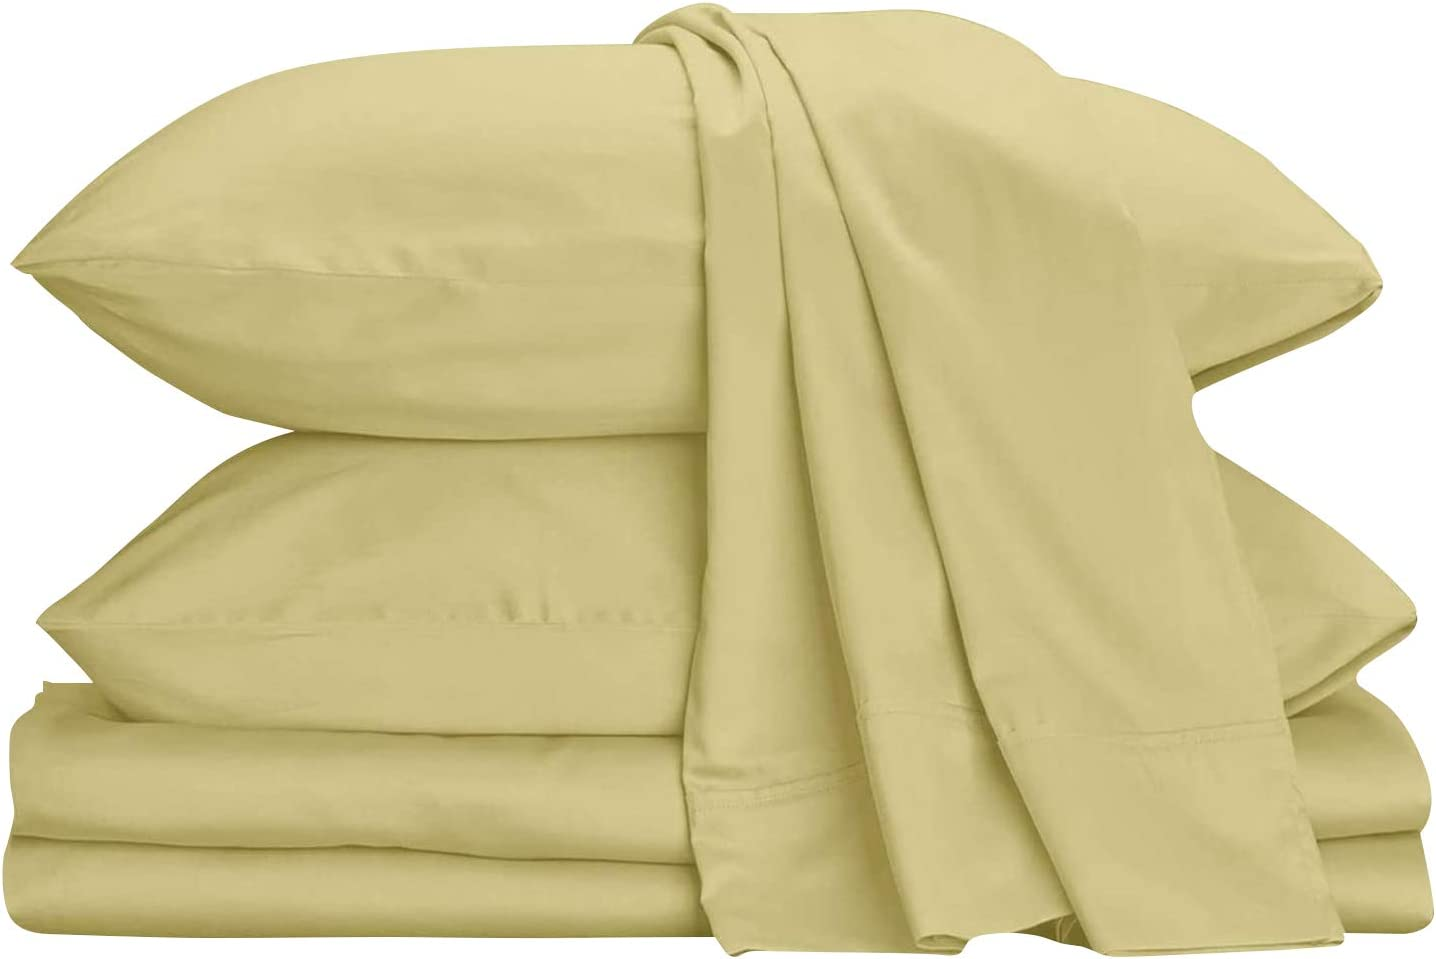 Urban Hut Egyptian Cotton Sheets Set (4 Piece) 800 Thread Count - Bedspread Deep Pocket Premium Quality Bedding Set, Luxury Bed Sheets for Hotel and Home Collection Soft Sateen Weave (King, Sand)